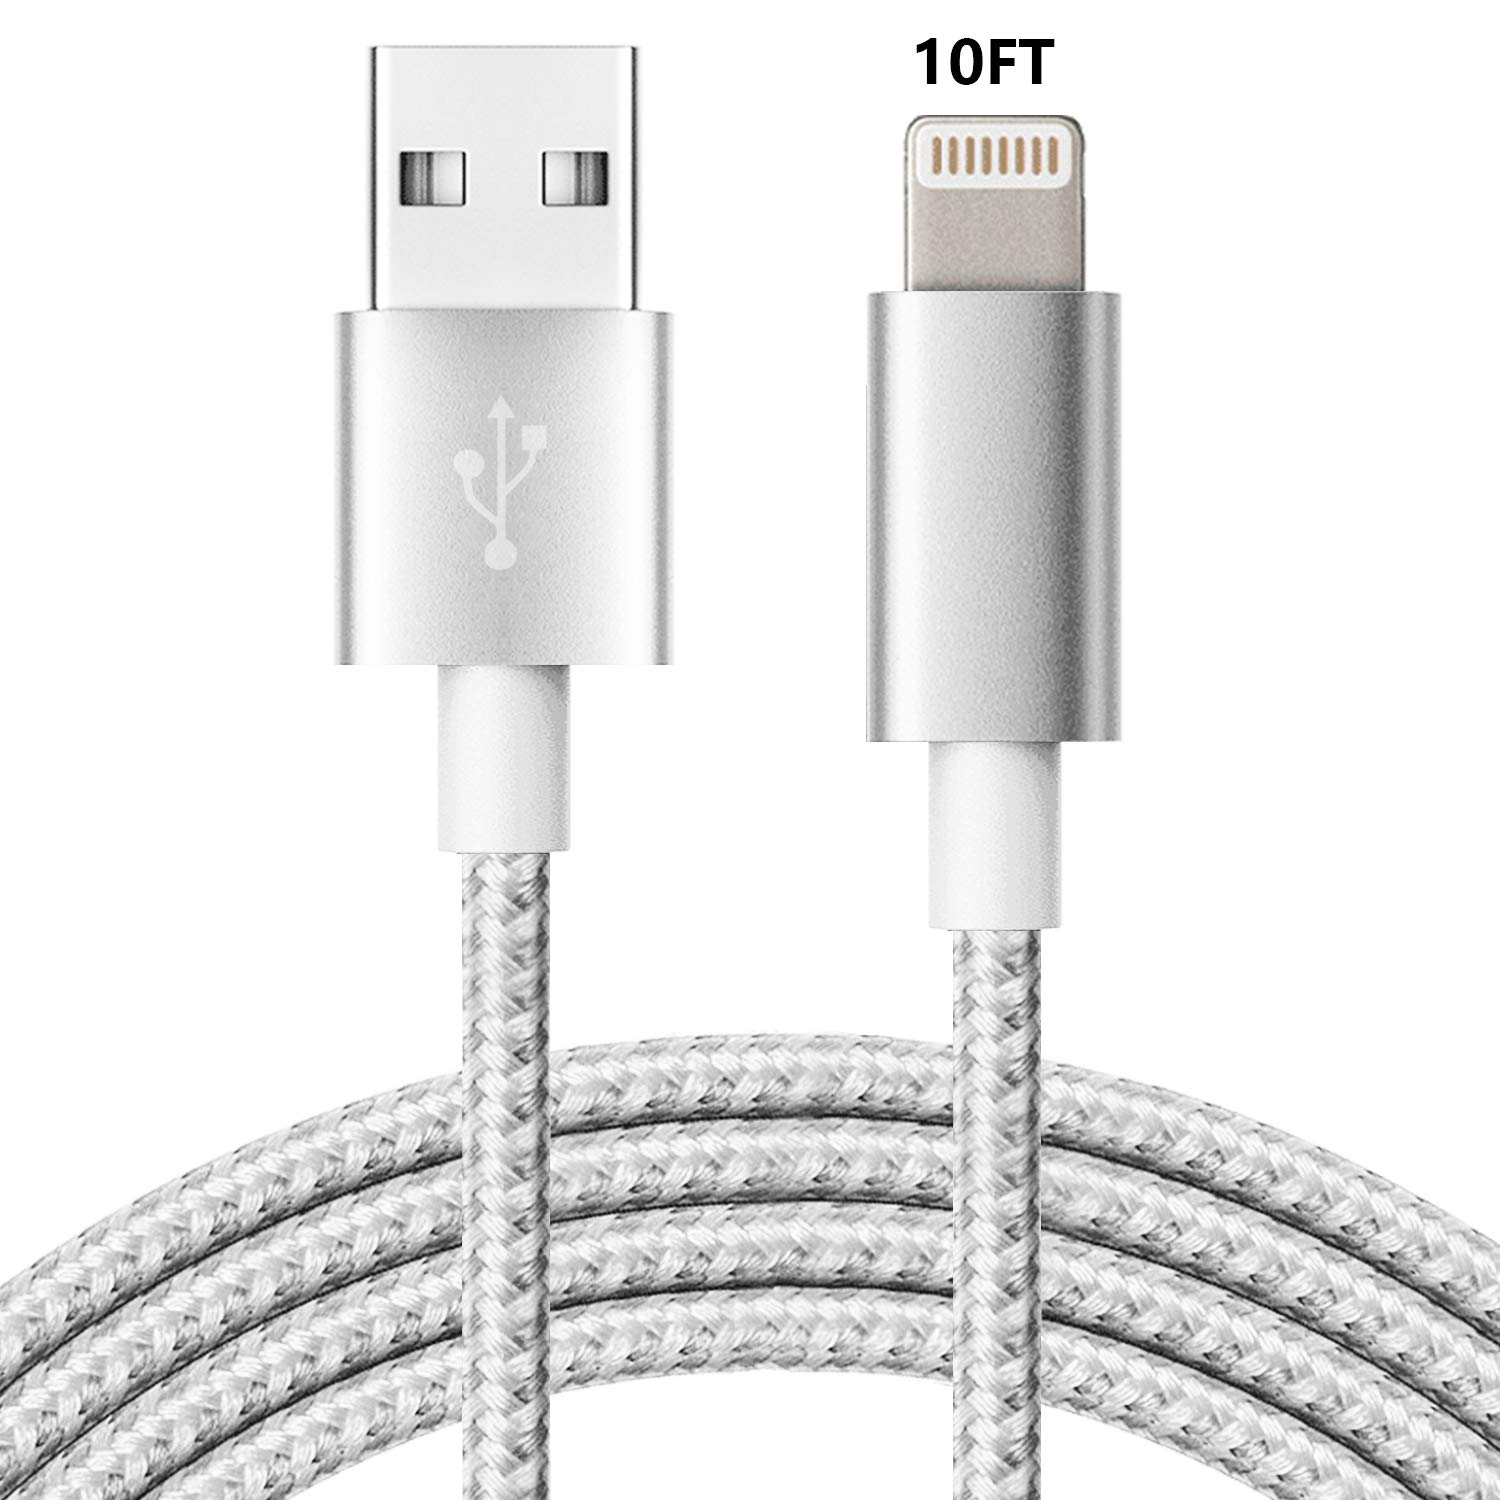 LINKPIN Lightning Cable Sync and Fast Charging fit for iPhone iPad iTouch- White (10ft/3M, 1Pack-White)